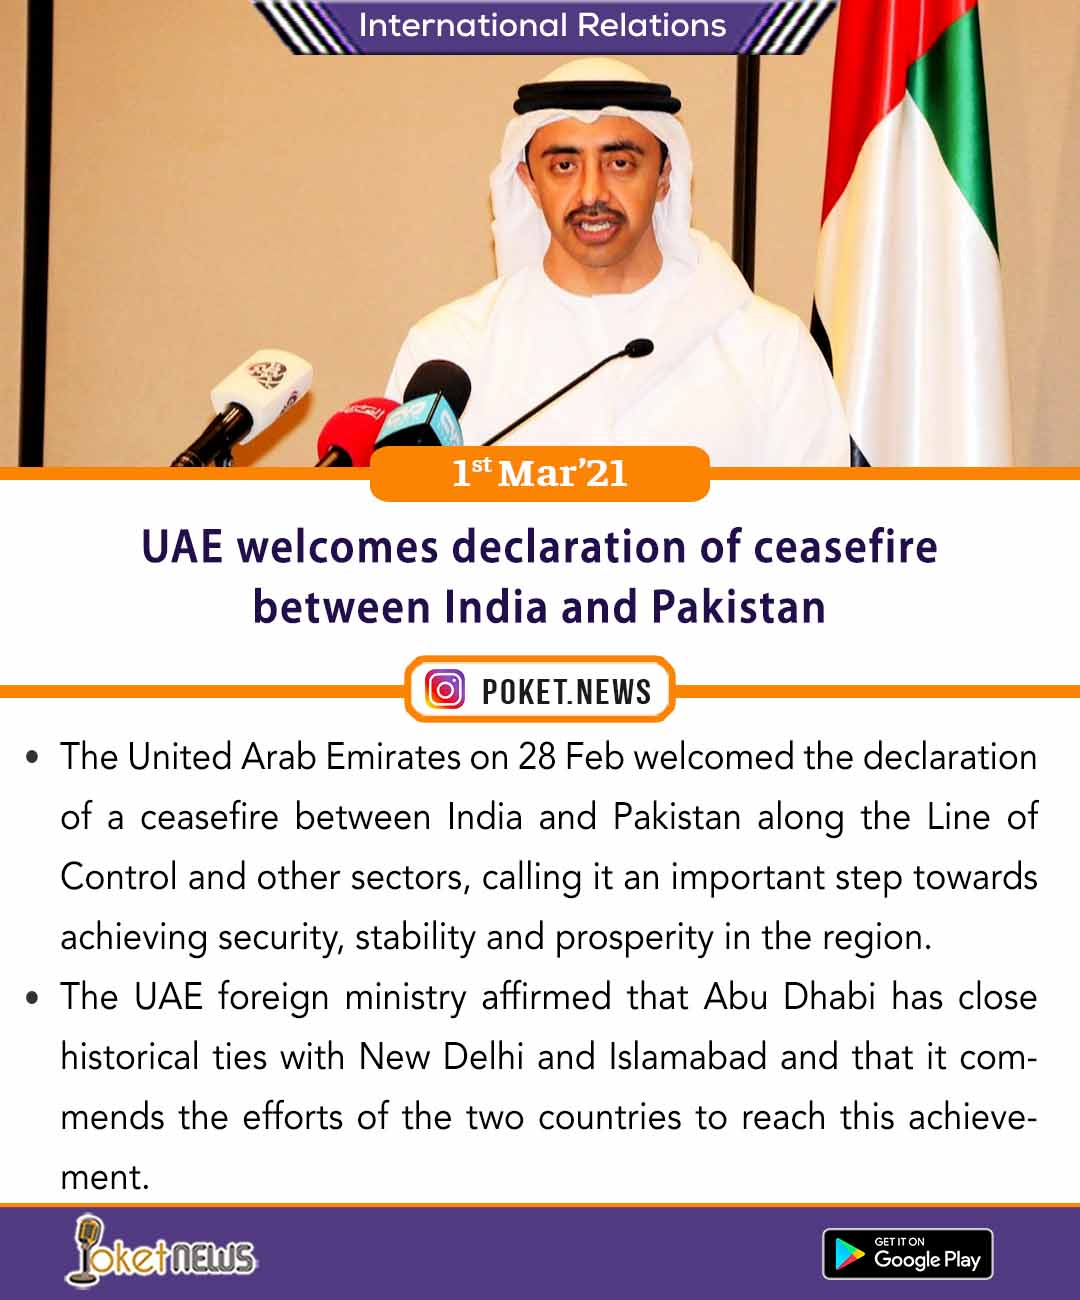 UAE welcomes declaration of ceasefire between India and Pakistan along Line of Control, other sectors